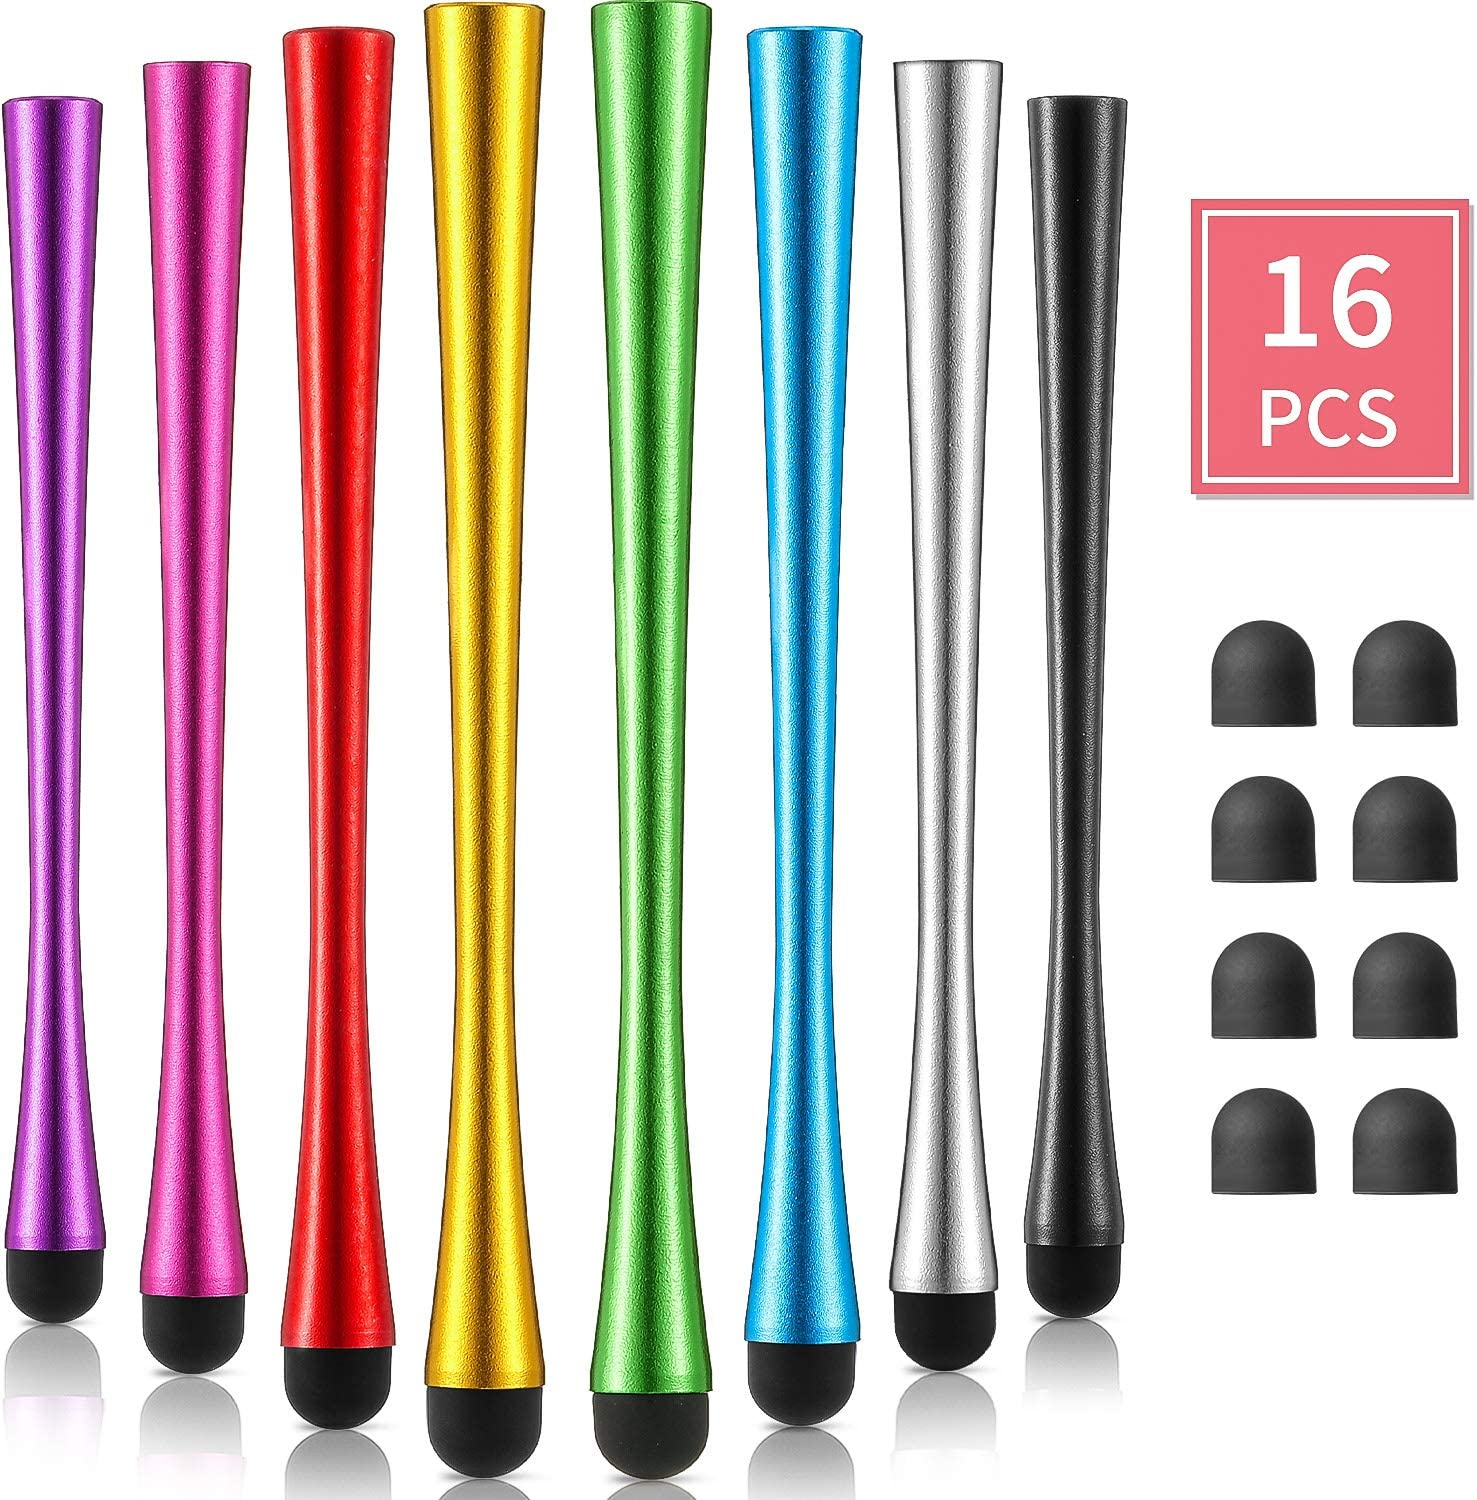 Outus 8 Pieces Slim Waist Stylus with 8 mm Fiber Tips Stylus Pens Capacitive Stylus for Touch Screens Devices Compatible with iPhone, iPad, Tablet (8 Colors)